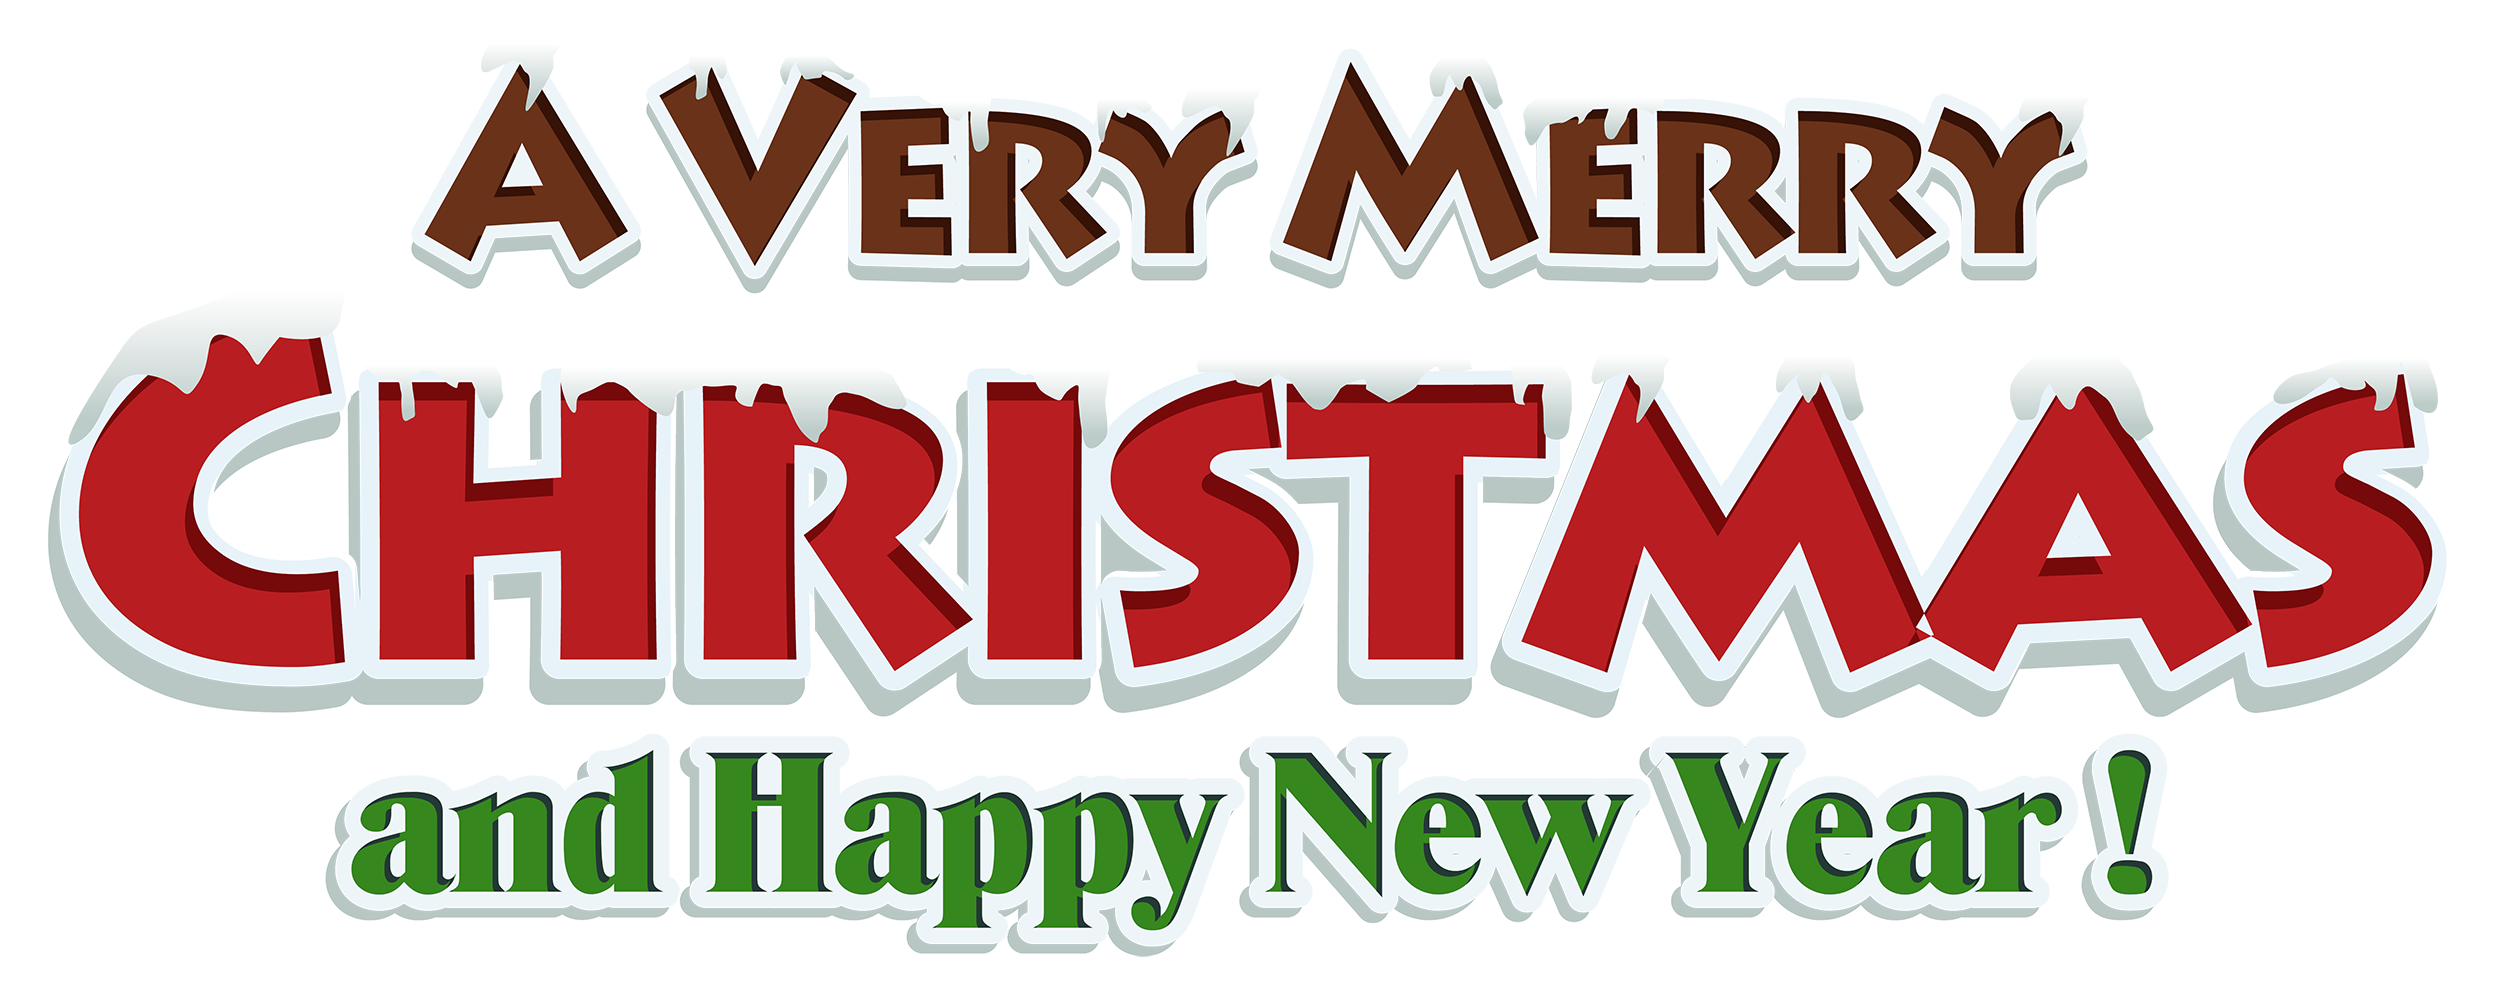 Merry xmas christmas free. 2016 clipart banner